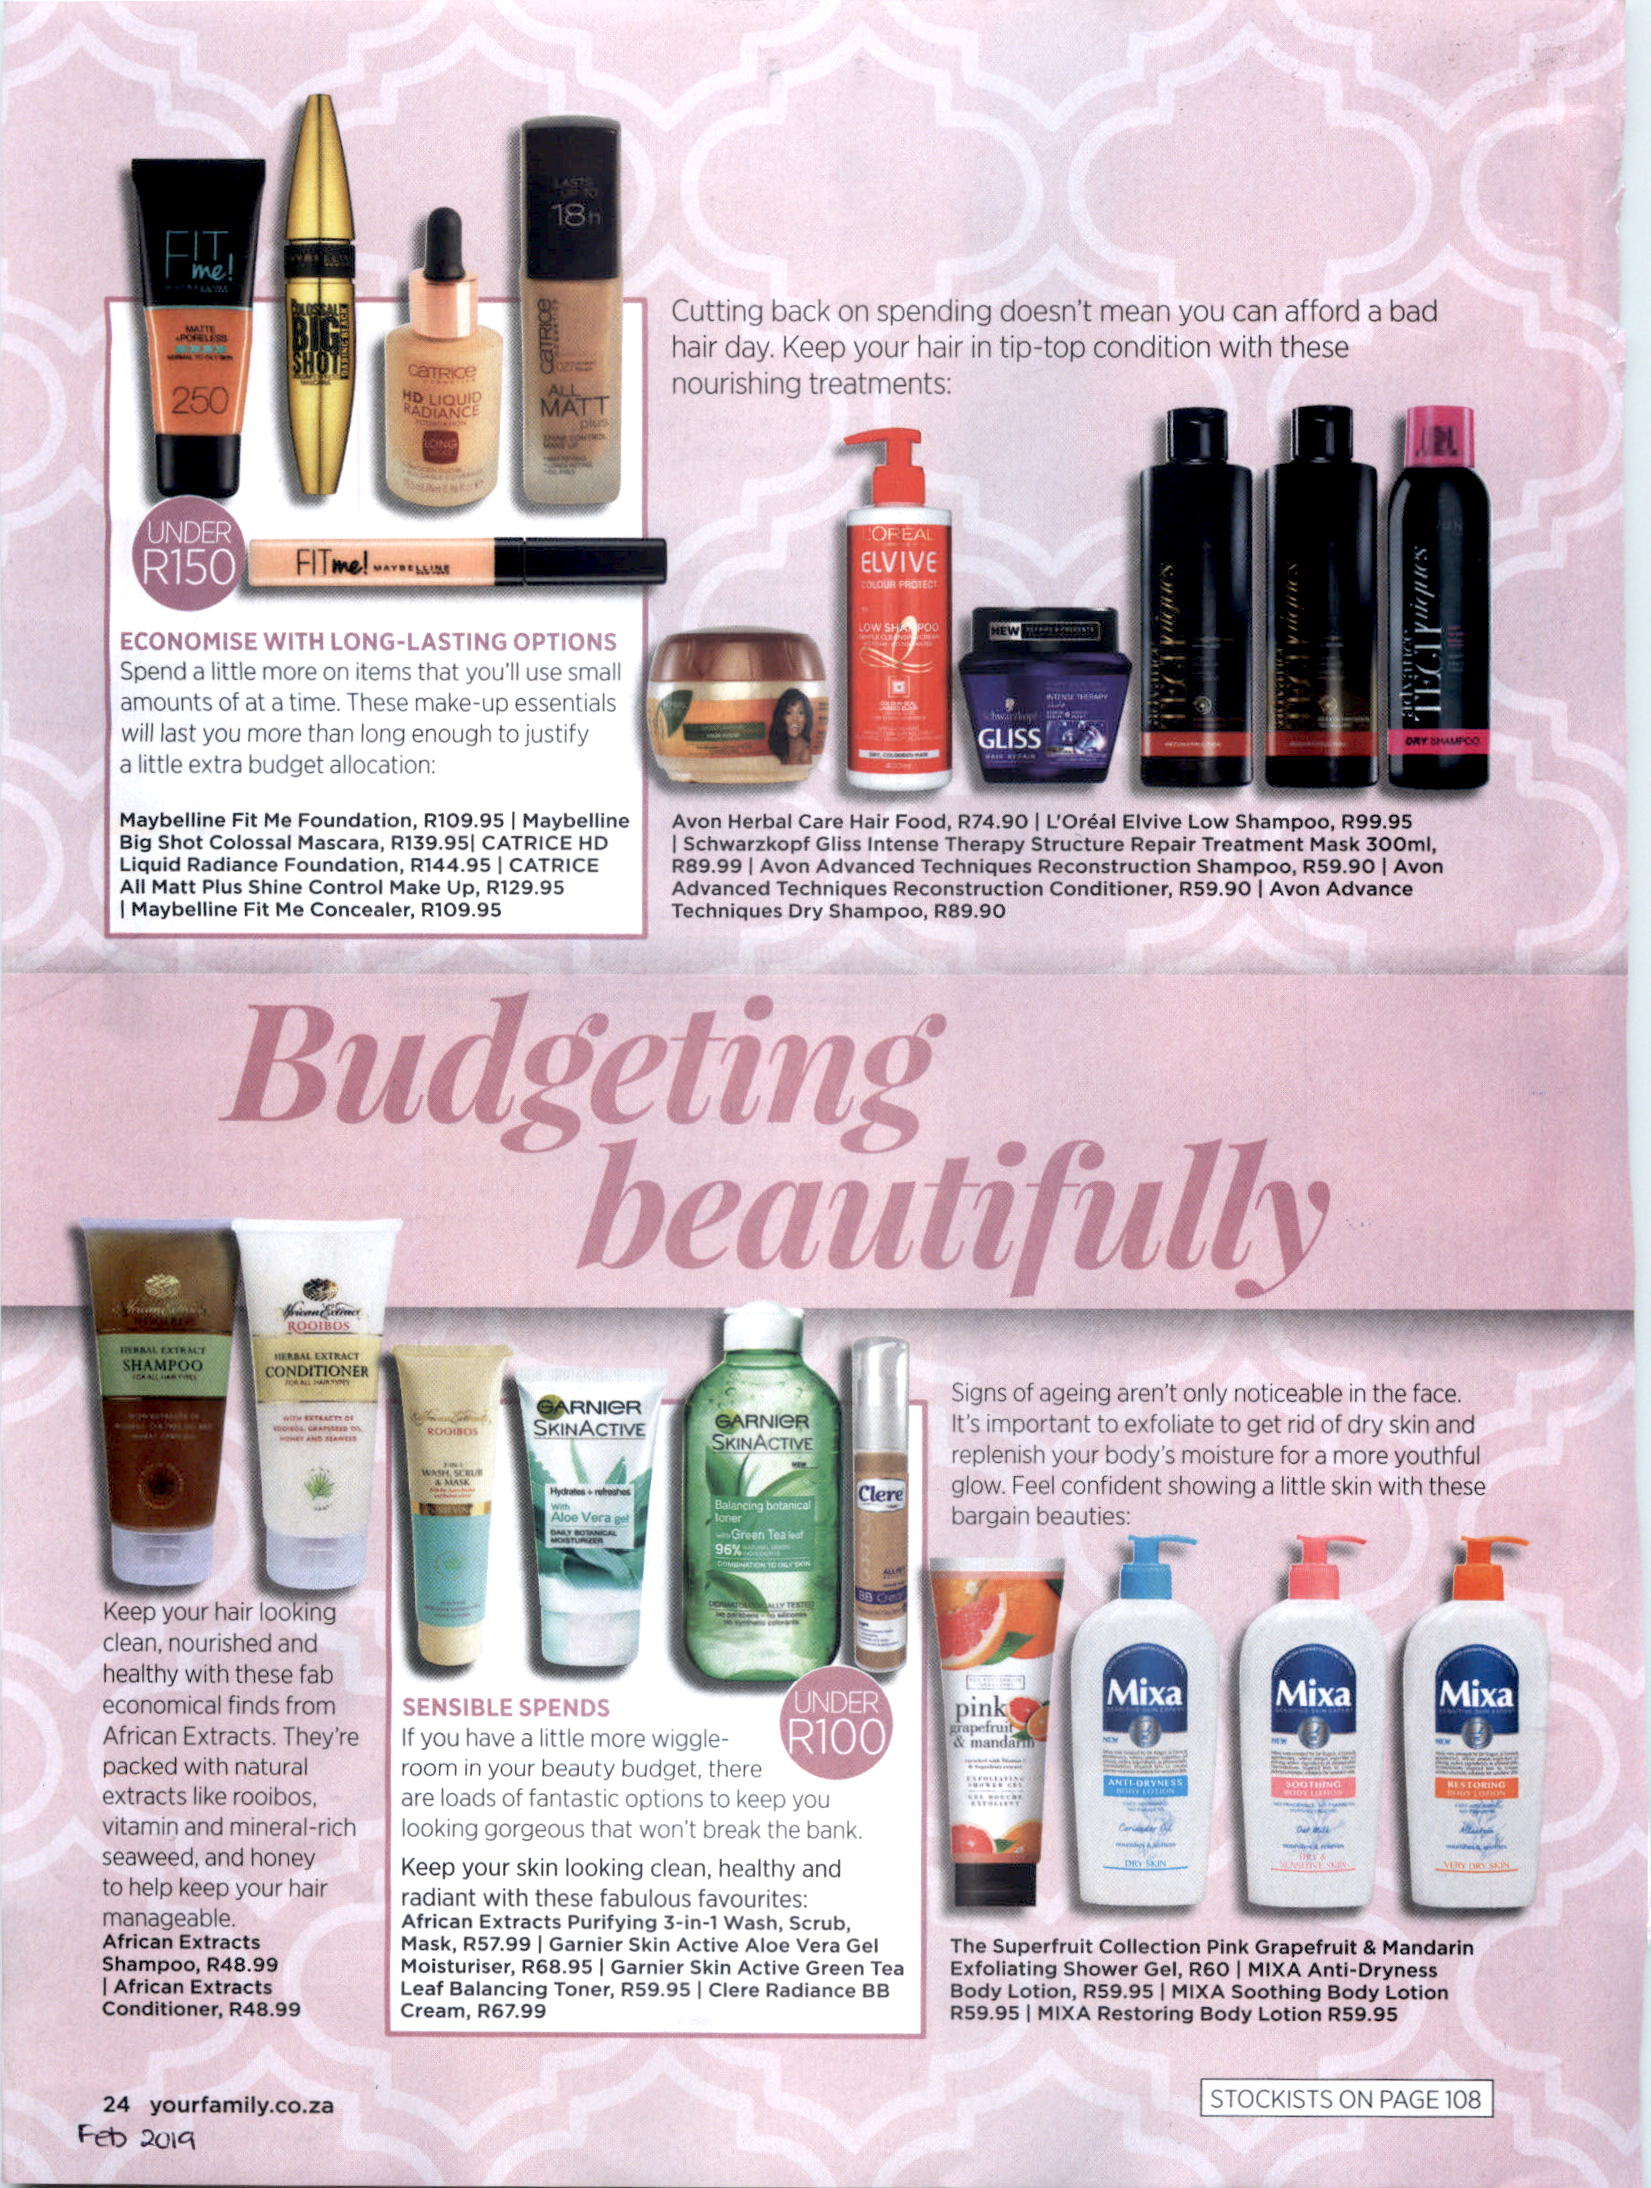 The Cape Town Toiletry Company - The Superfruit Collection - Your Family pg24 - Feb 2019